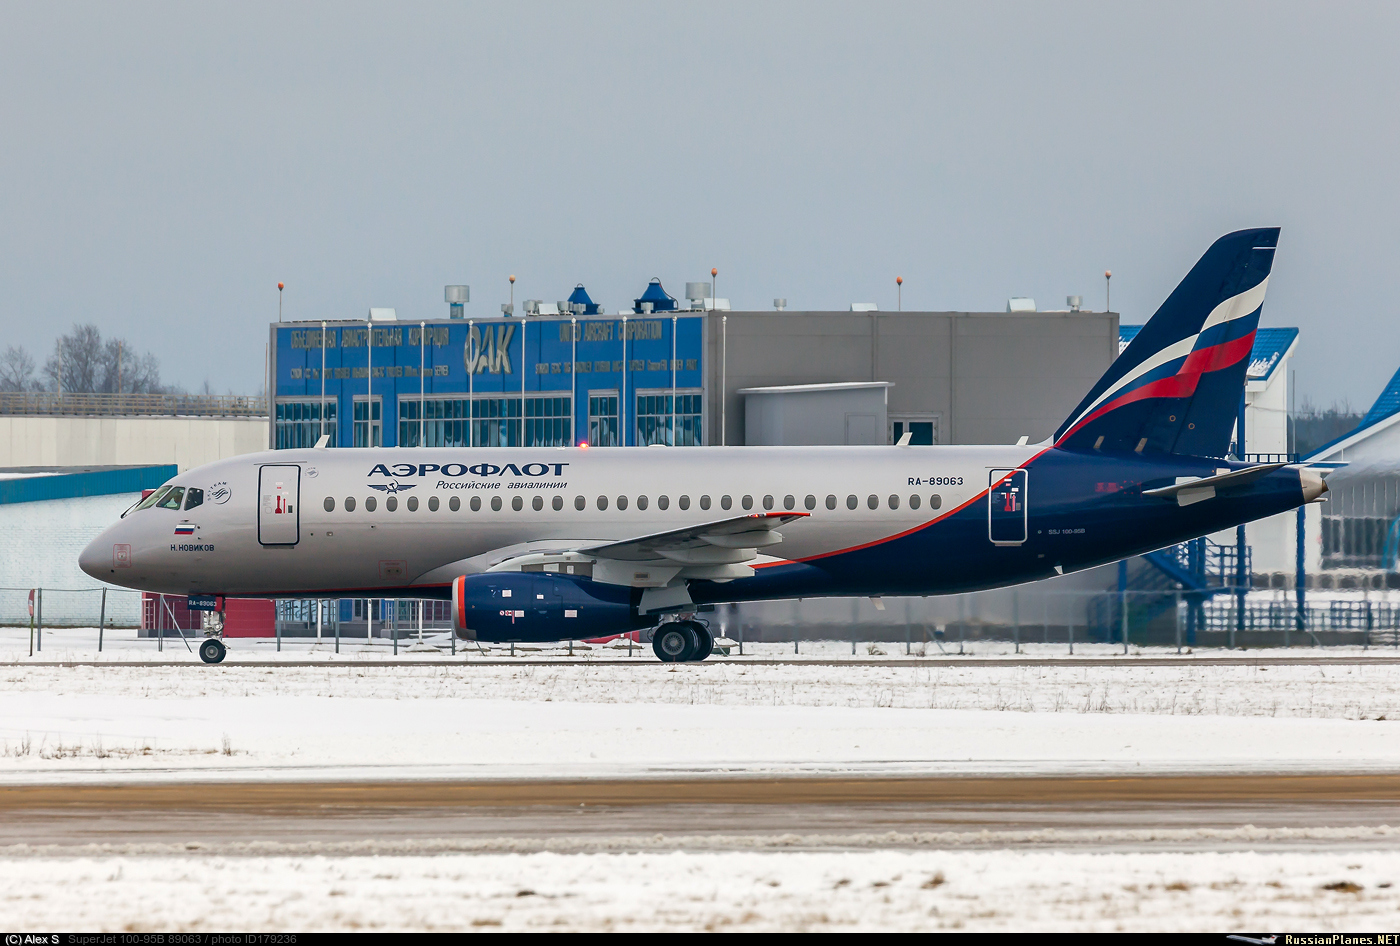 http://russianplanes.net/images/to180000/179236.jpg